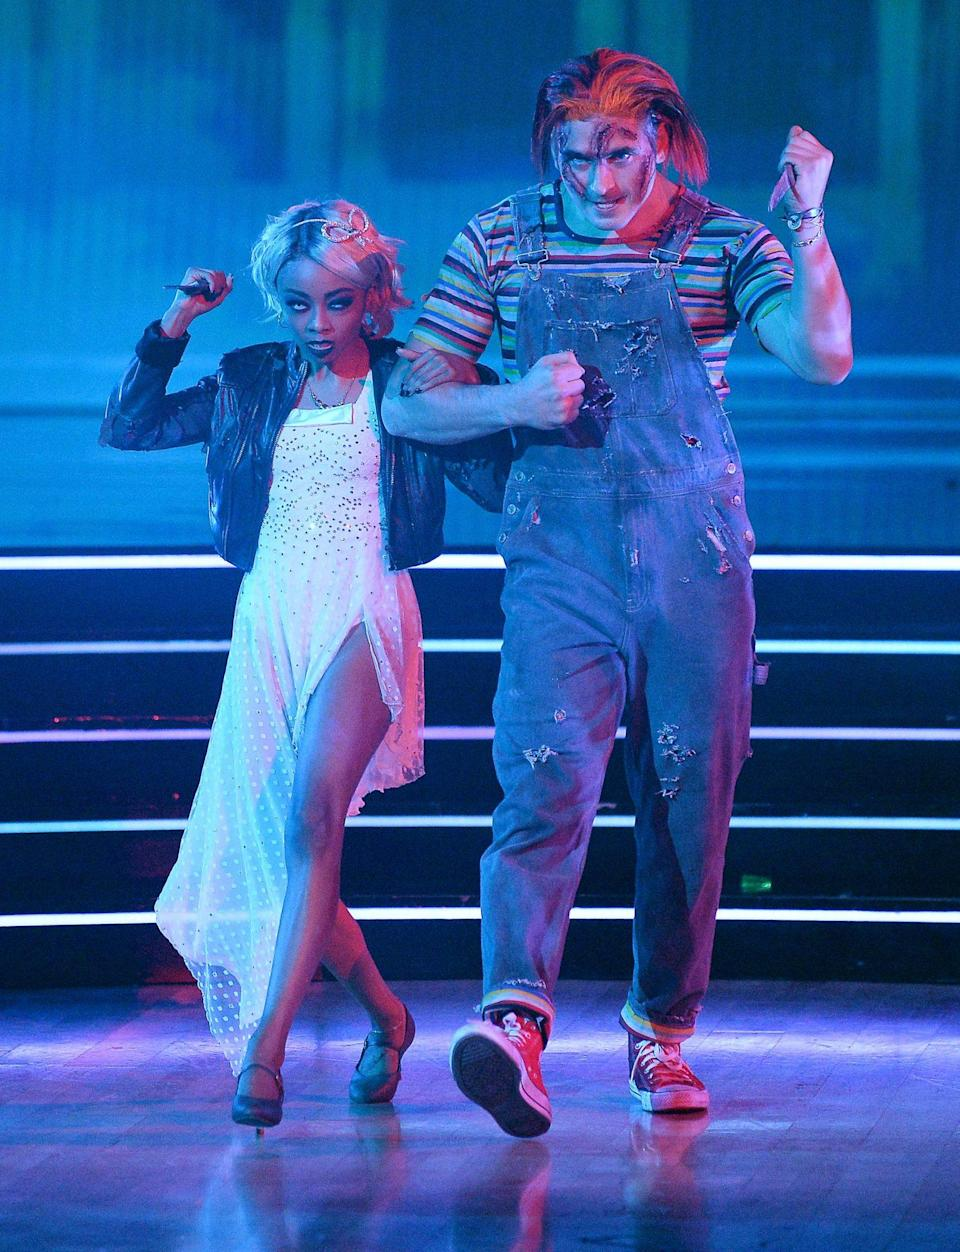 <p>The pair look ultra-spooky dressed Tiffany Valentine and Chucky from <em>Bride of Chucky. </em></p>